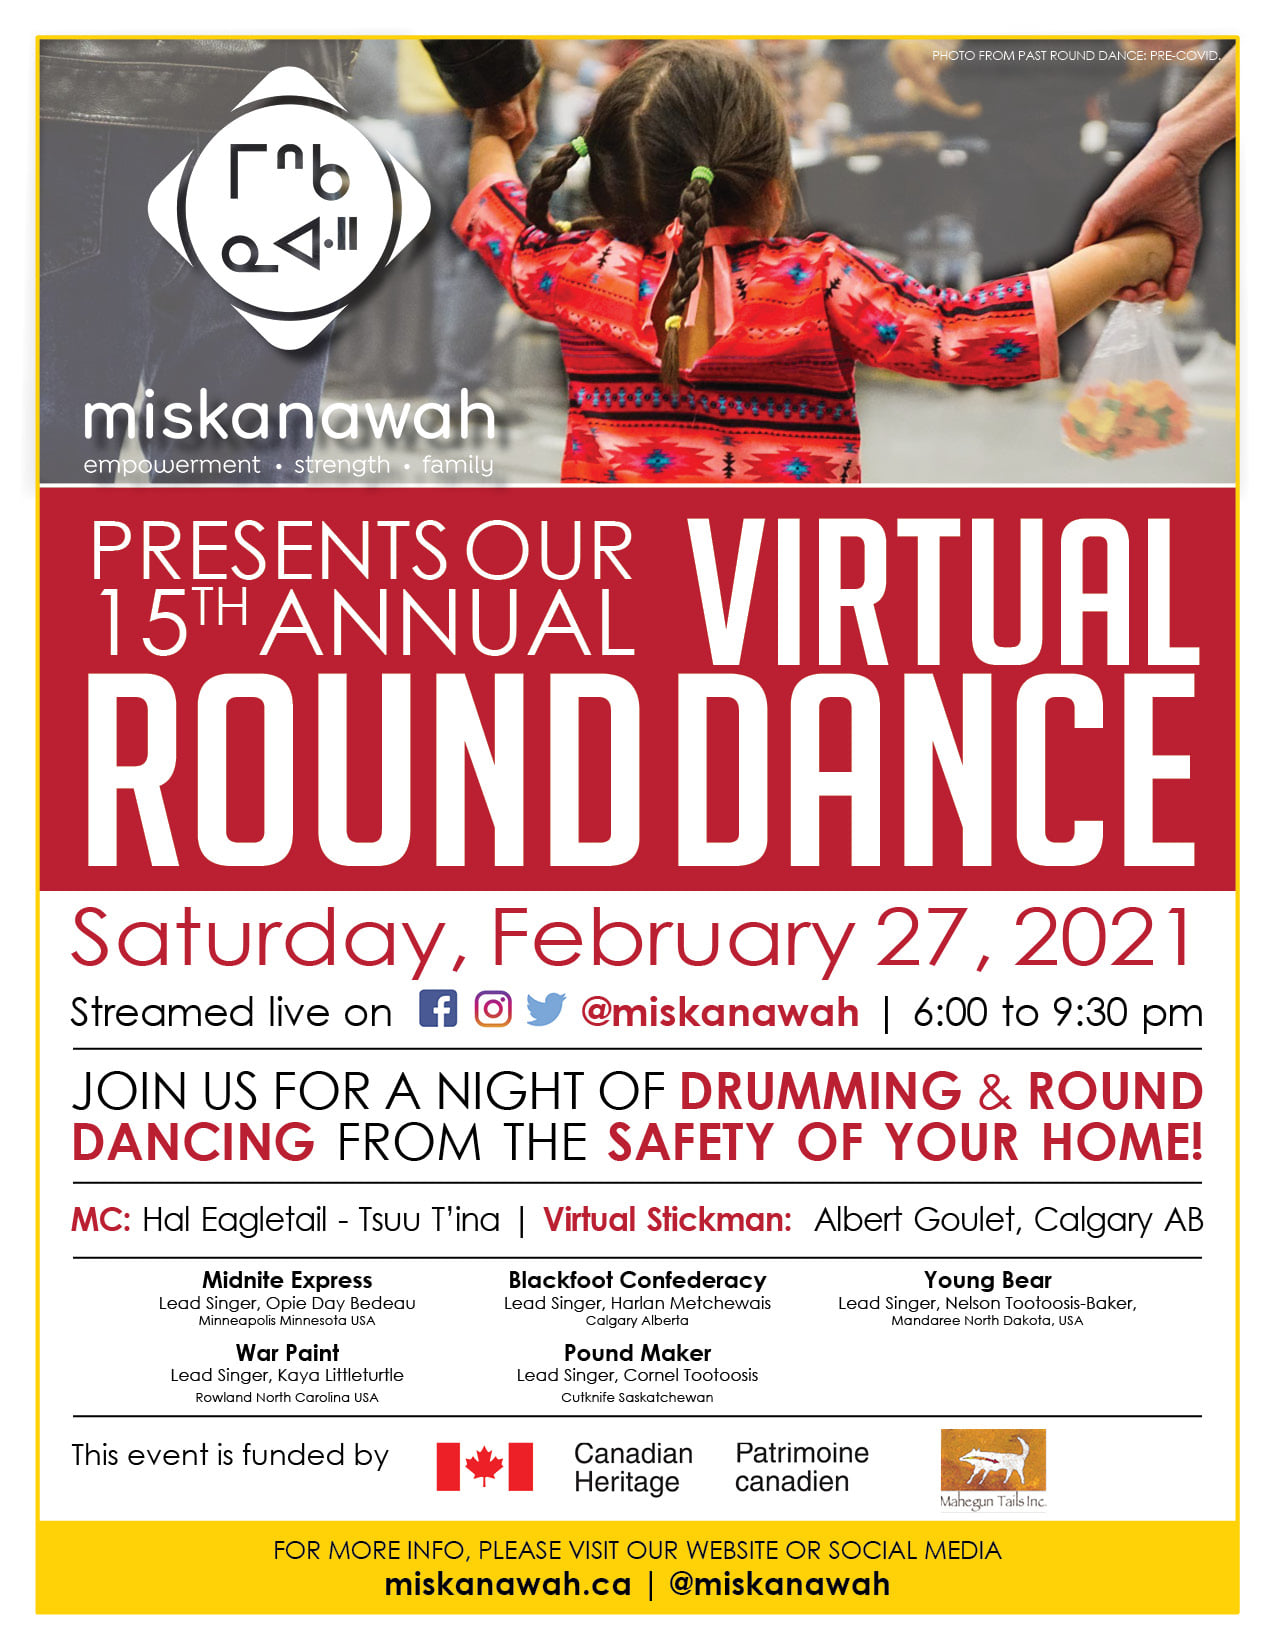 15th Annual Virtual Round Dance presented by miskanawah